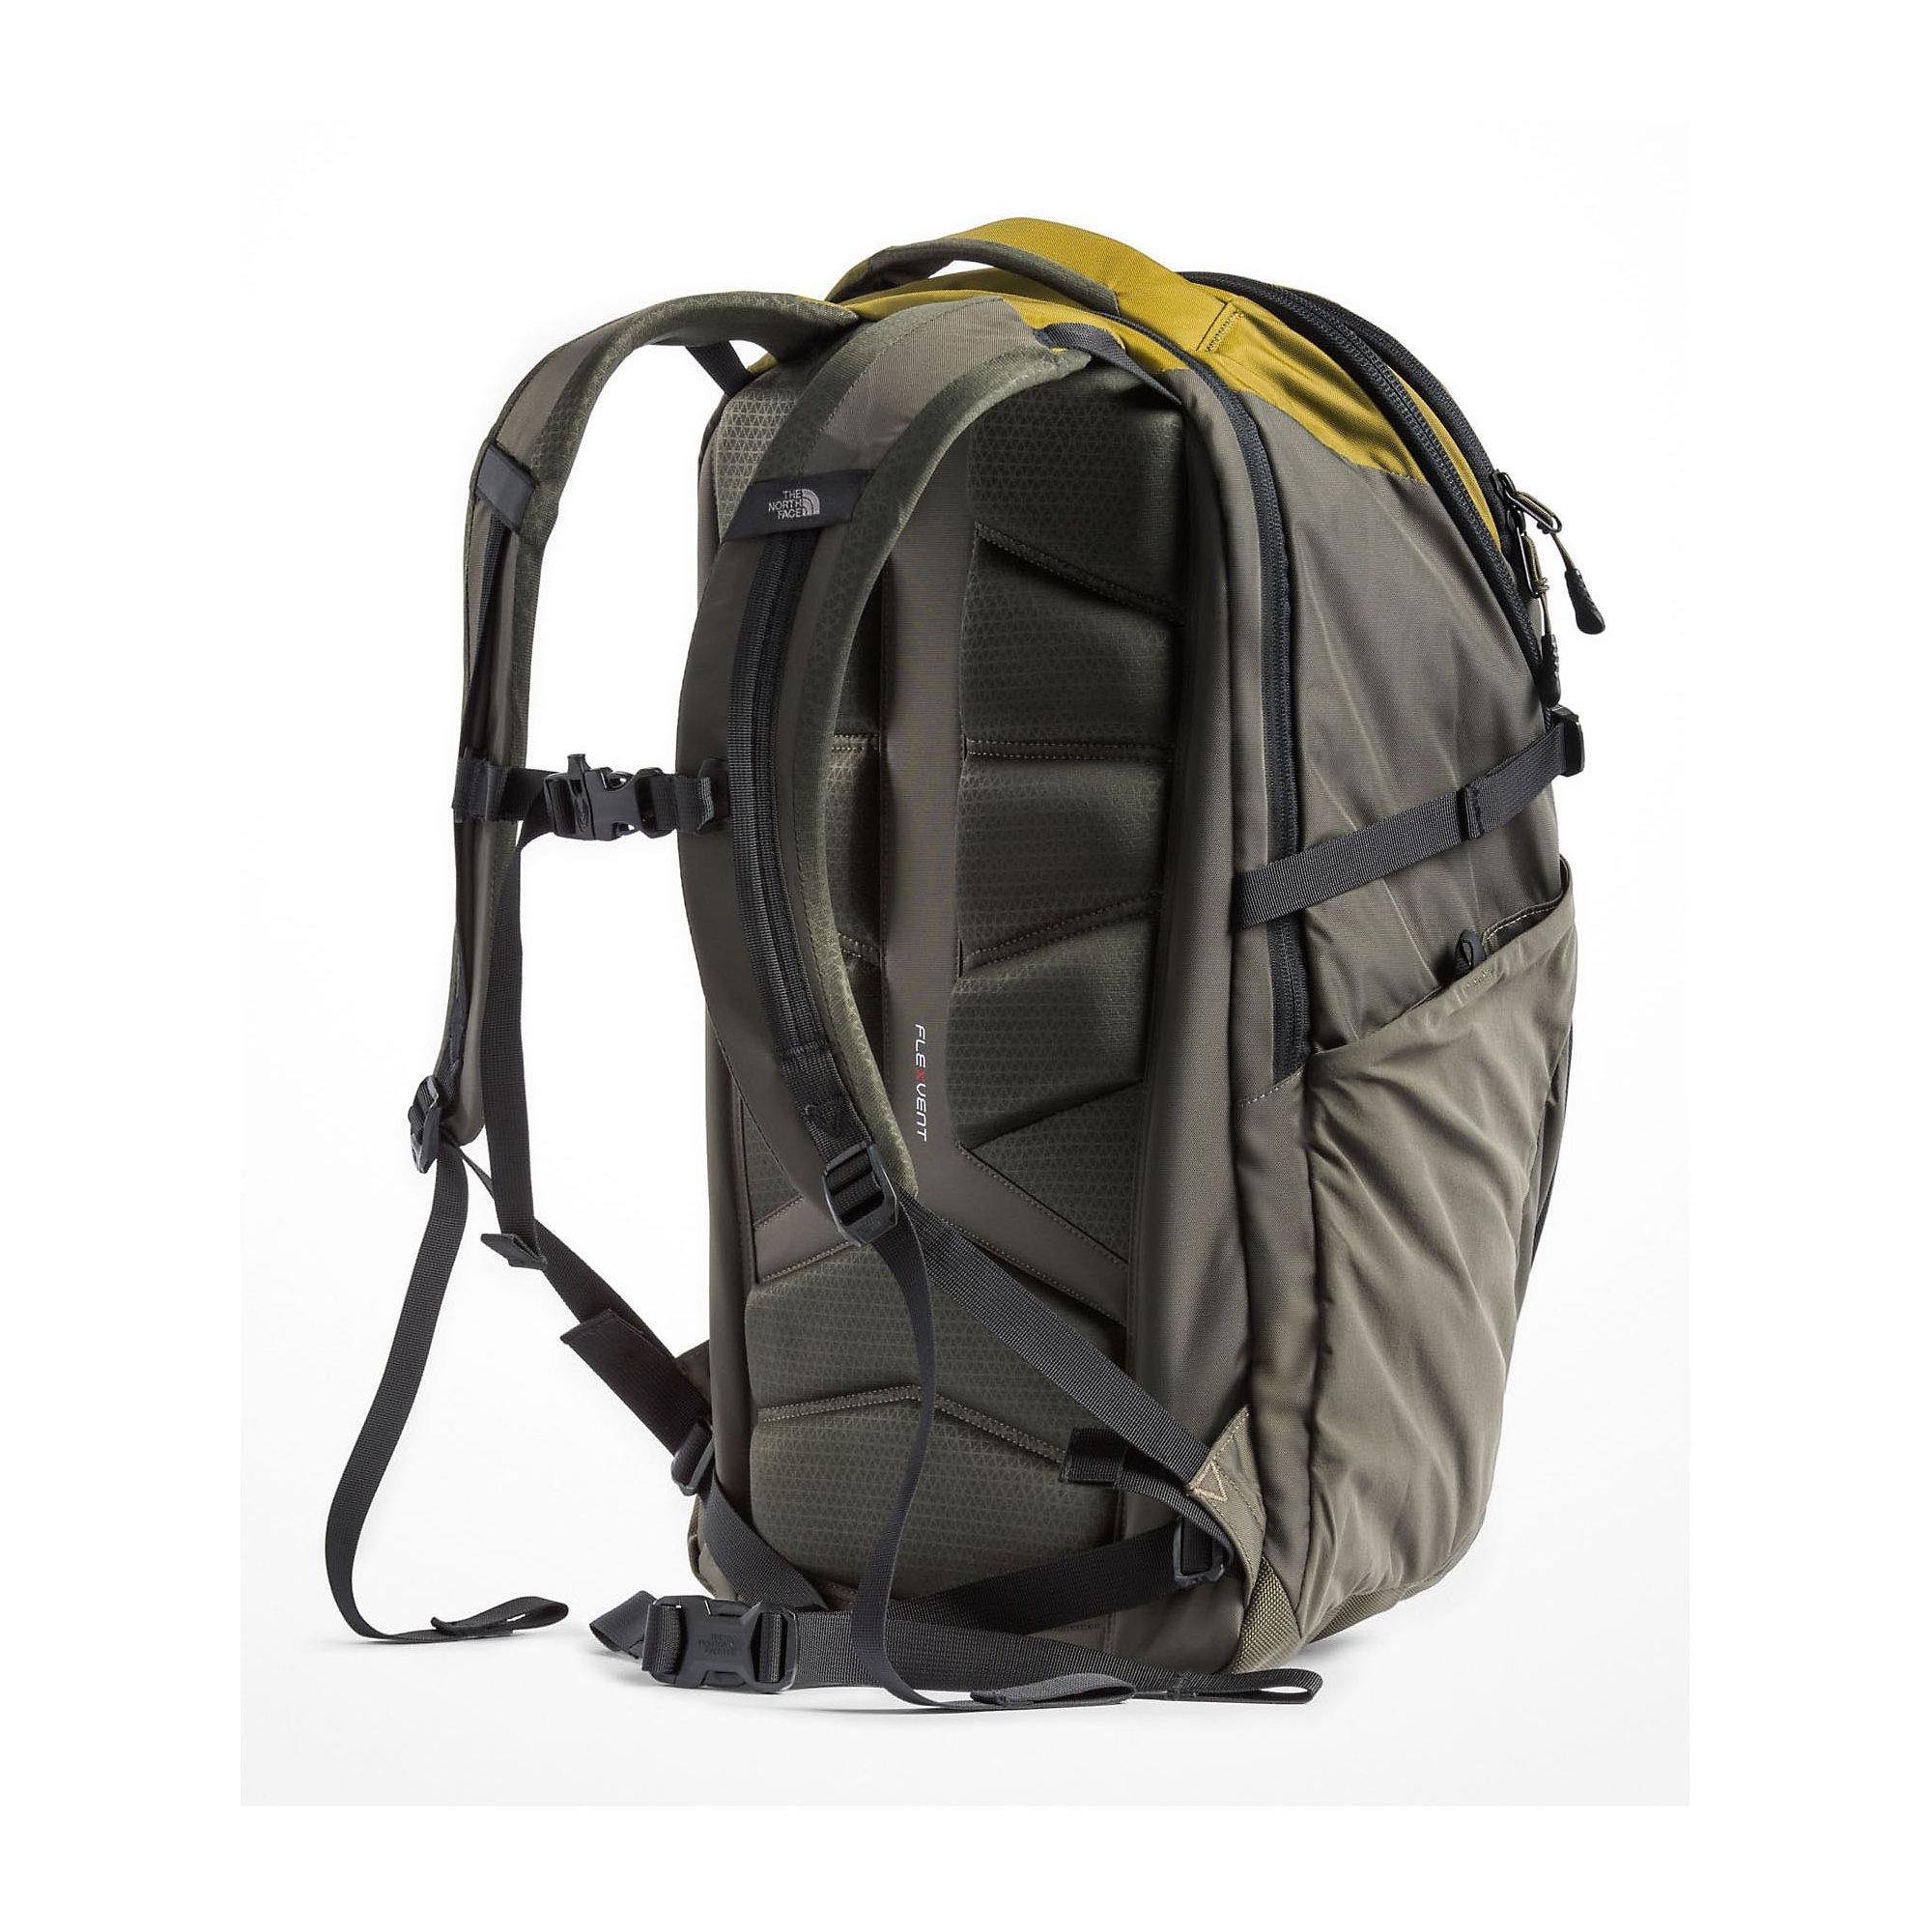 298d1a444 The North Face Router Backpack in Green - Lyst